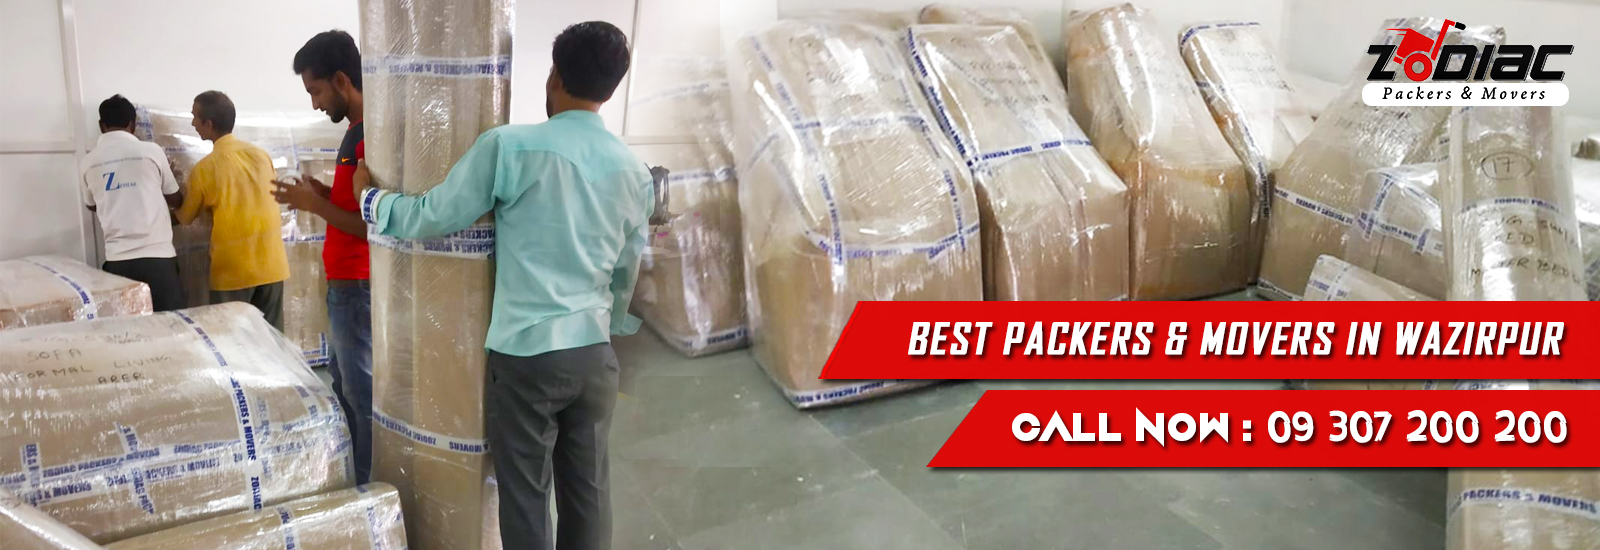 Packers and Movers in Wazirpur